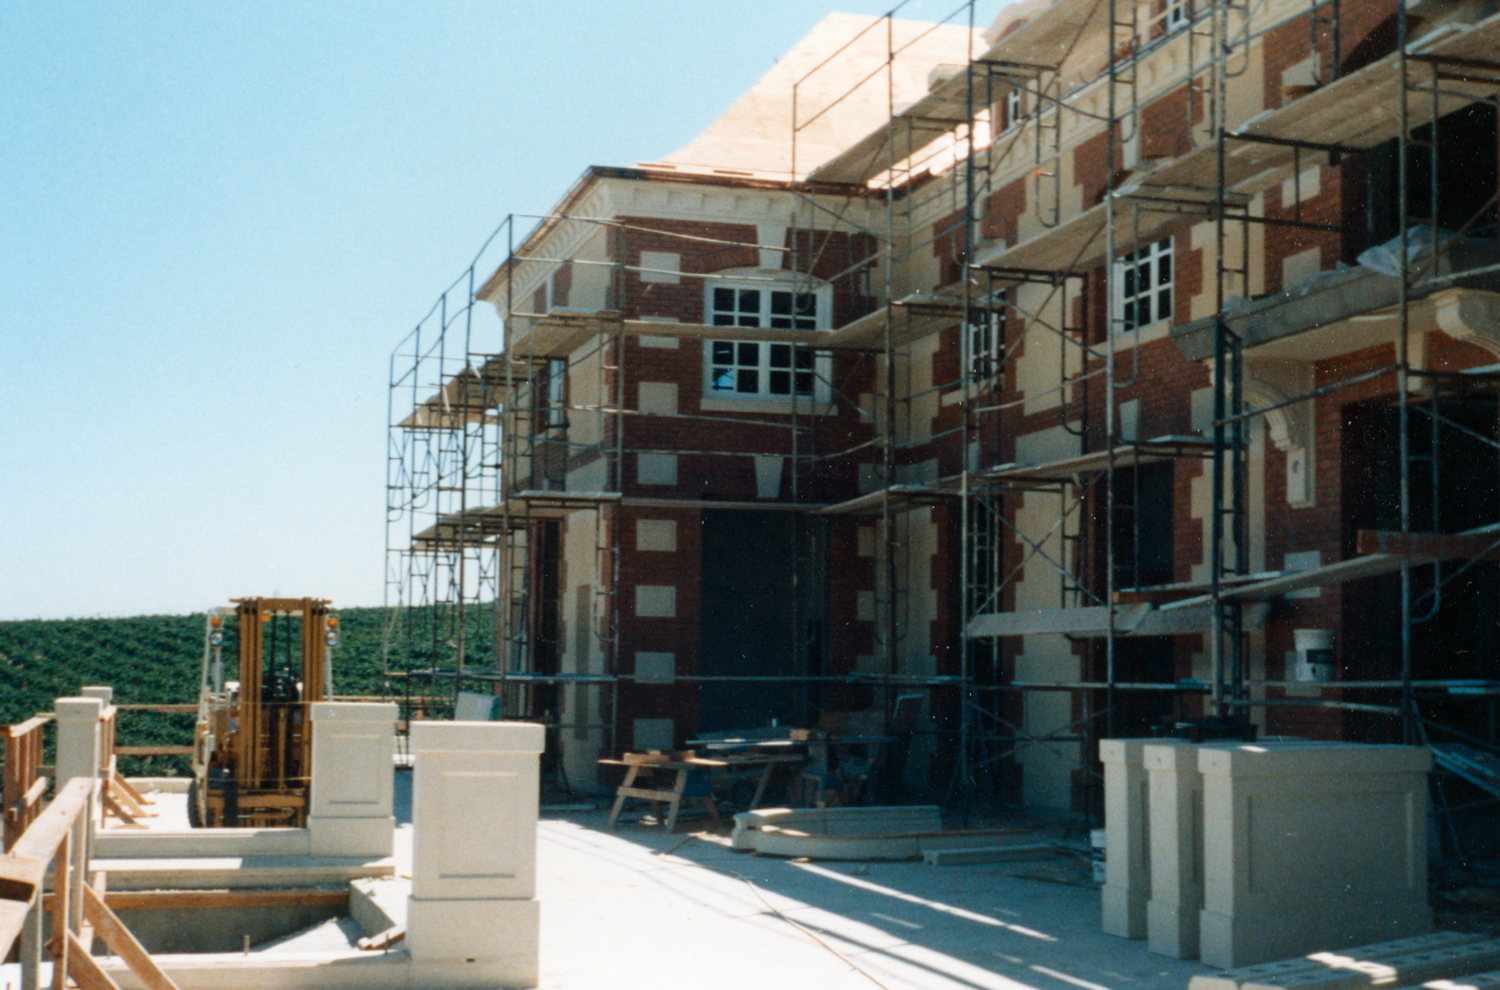 Construction of Chateau